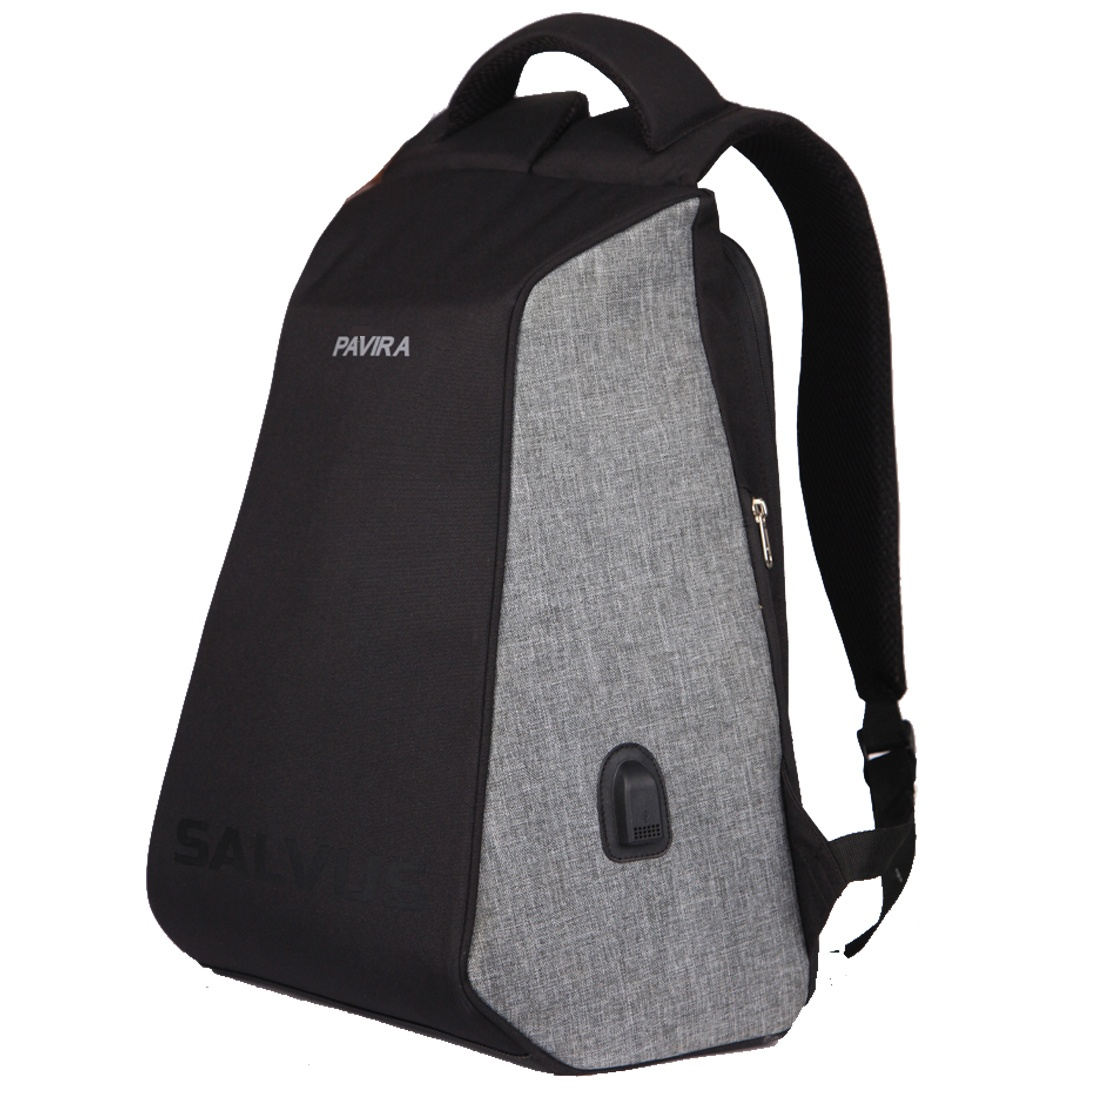 ba965738a47f Now days there are many anti theft backpacks in the market of best quality  material as well as bad quality material.